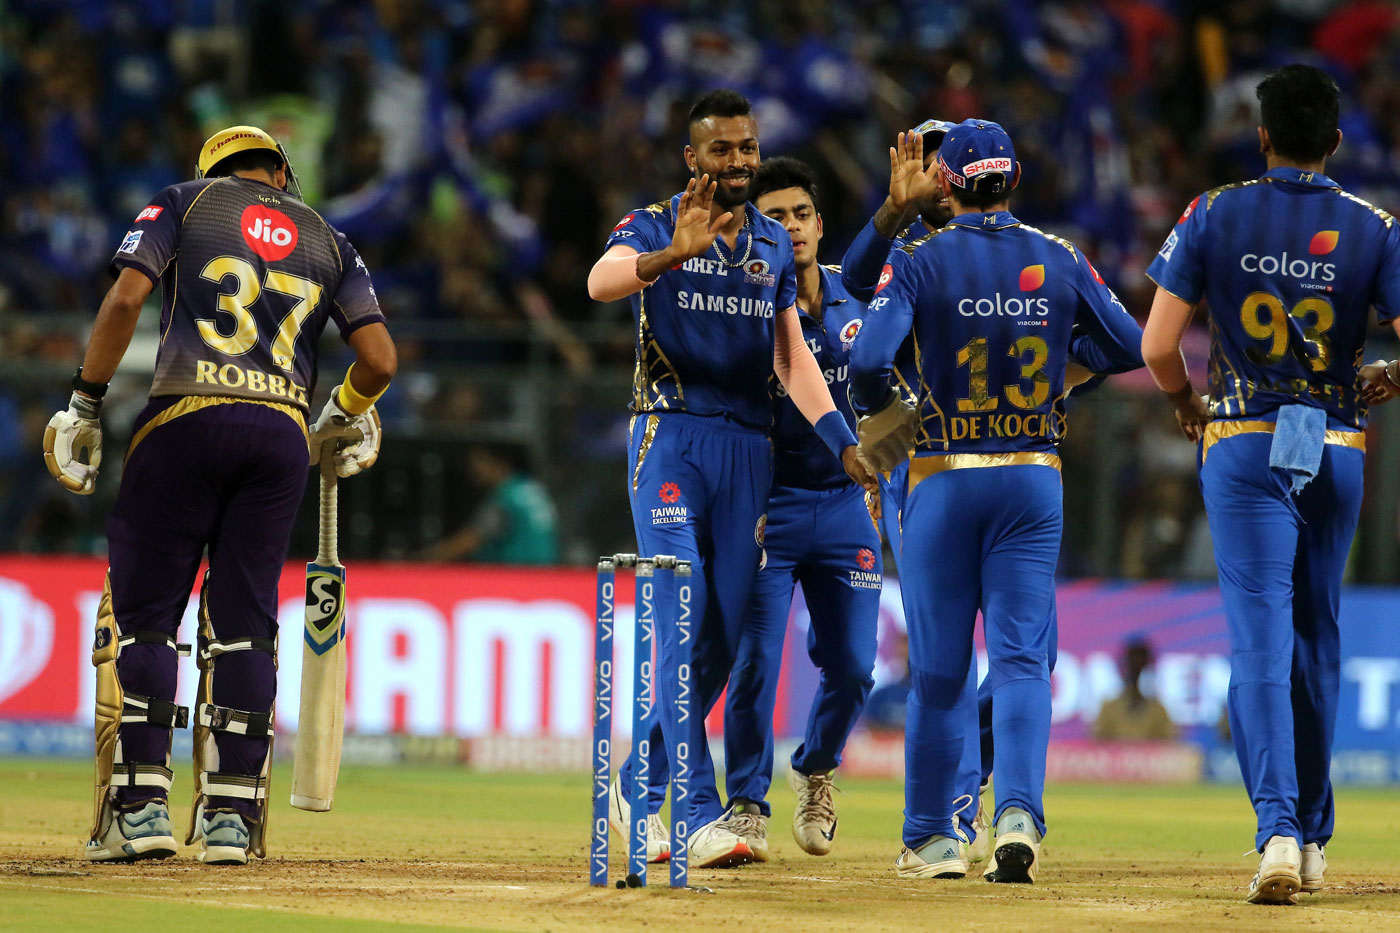 IPL 2019: Dinesh Karthik Vouches to Comeback Stronger in the Next Edition 2